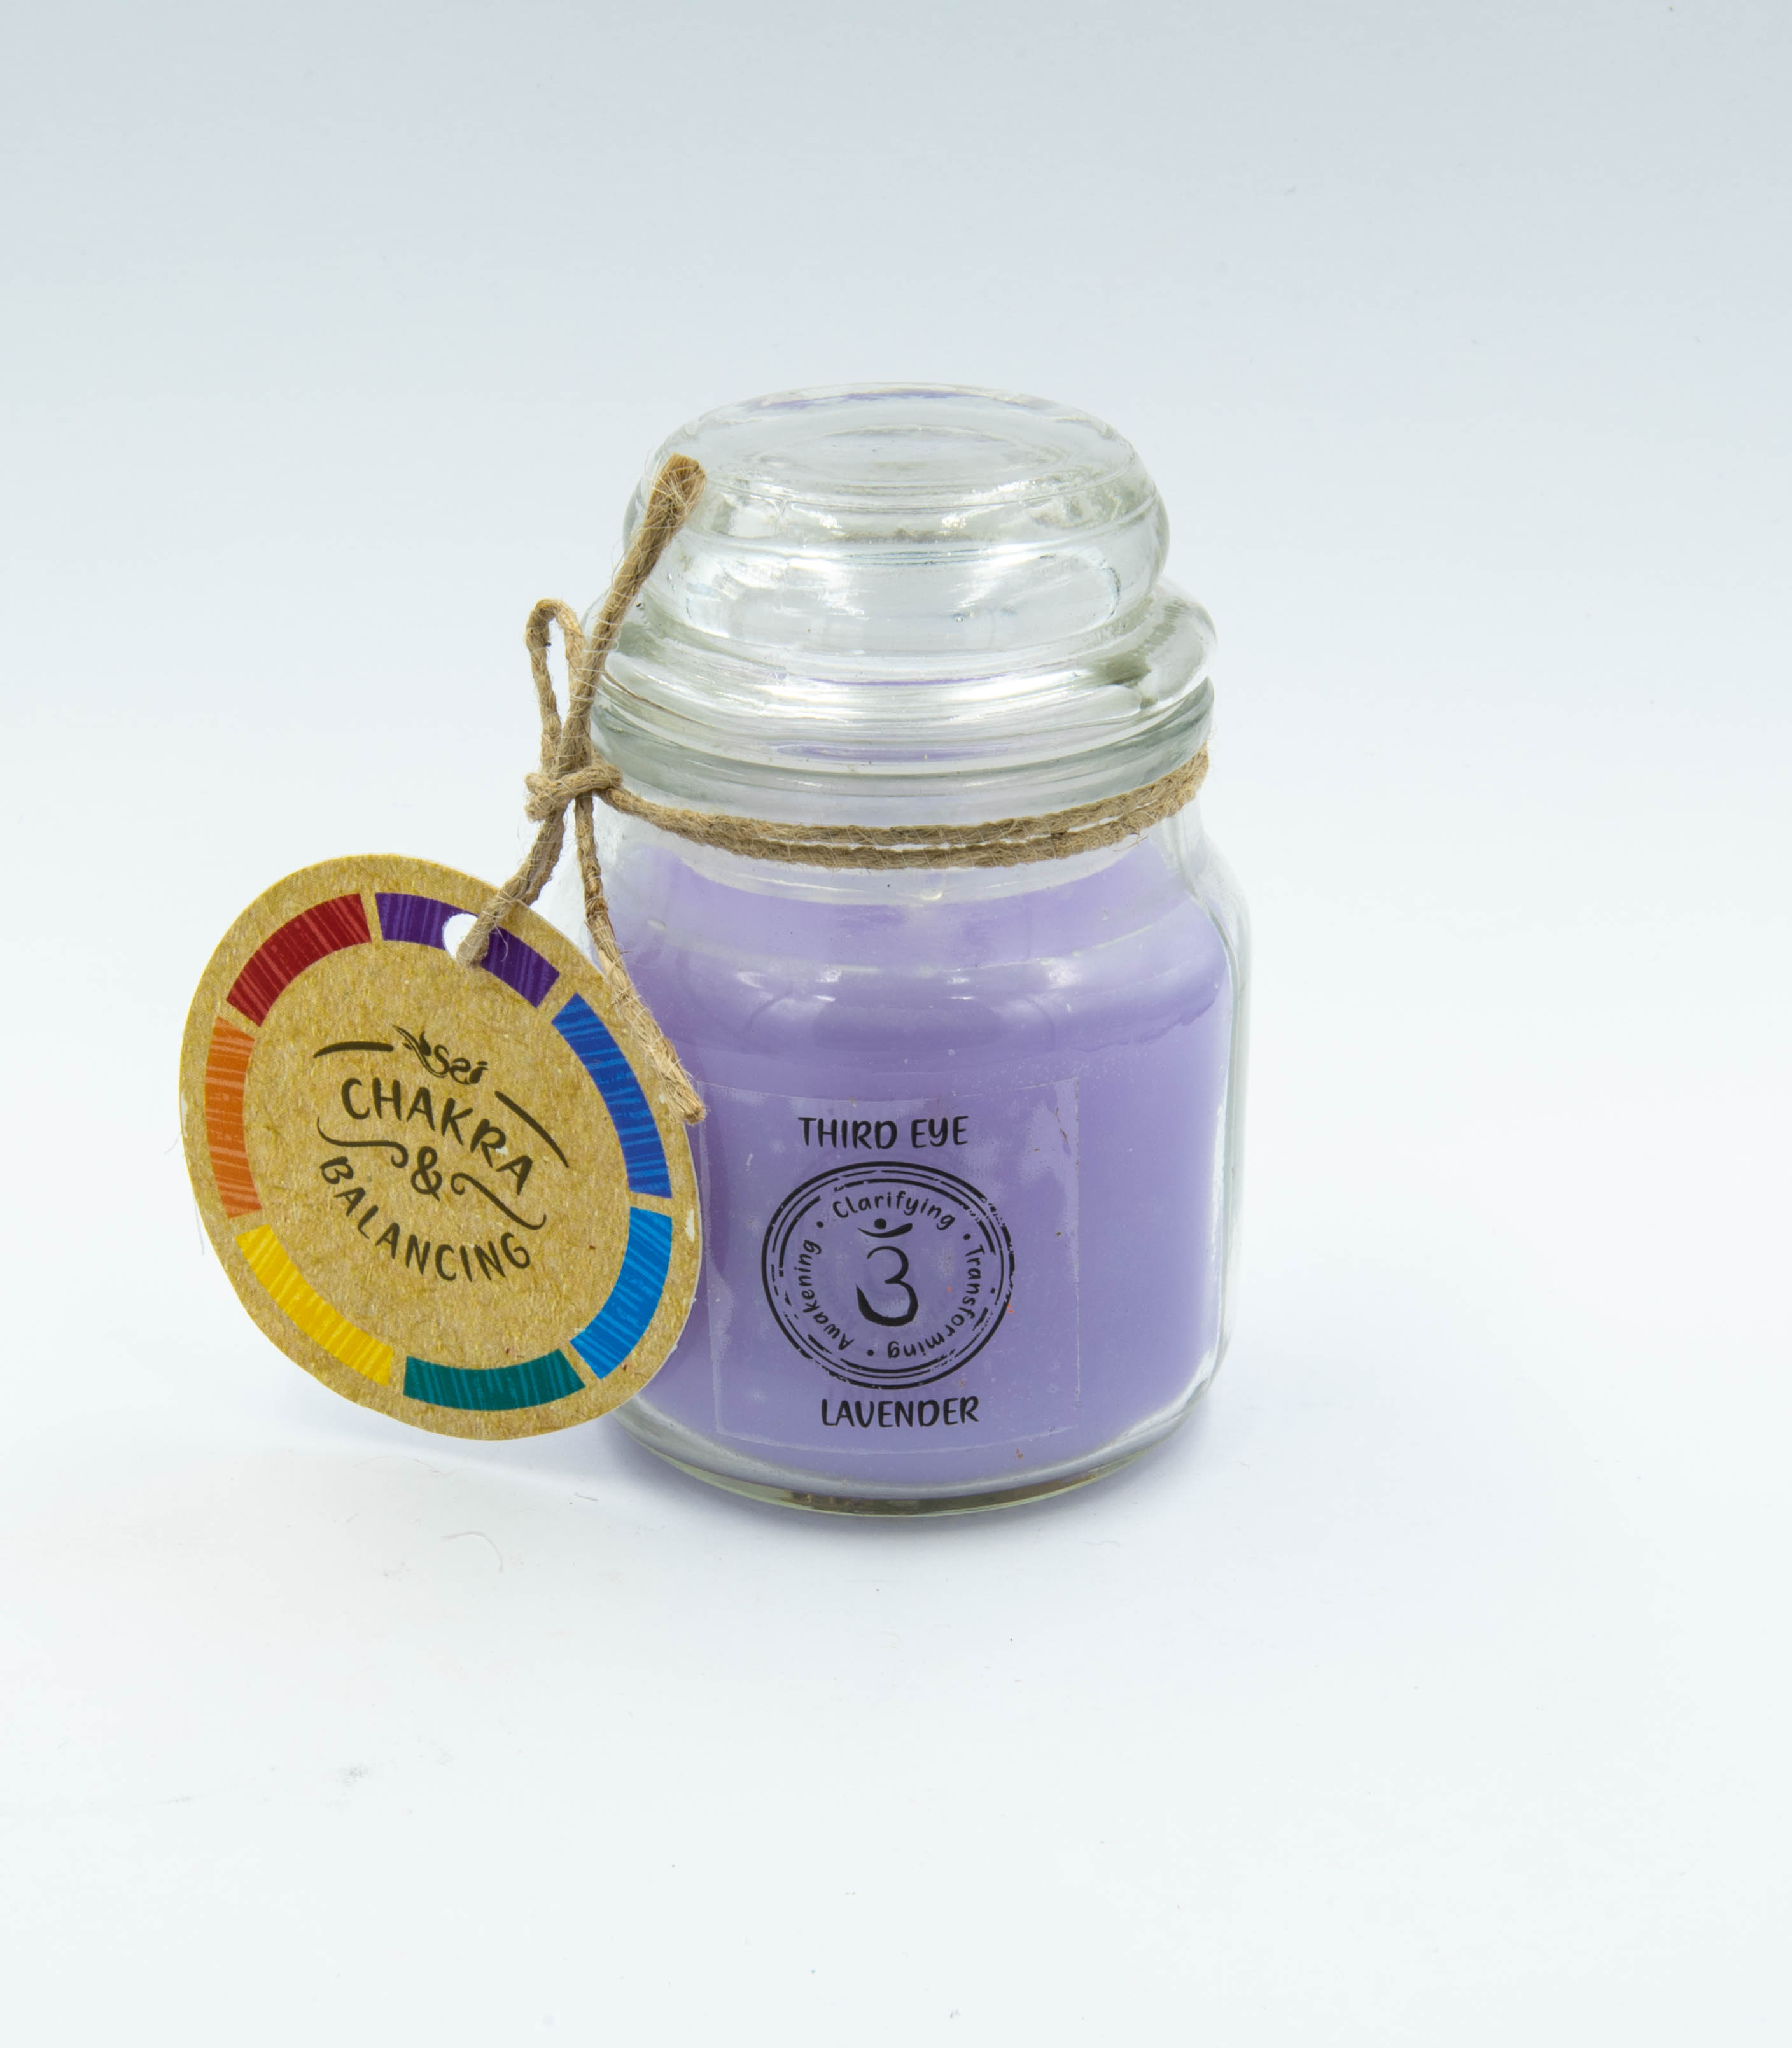 Third Eye Chakra Lavender Scented Candle